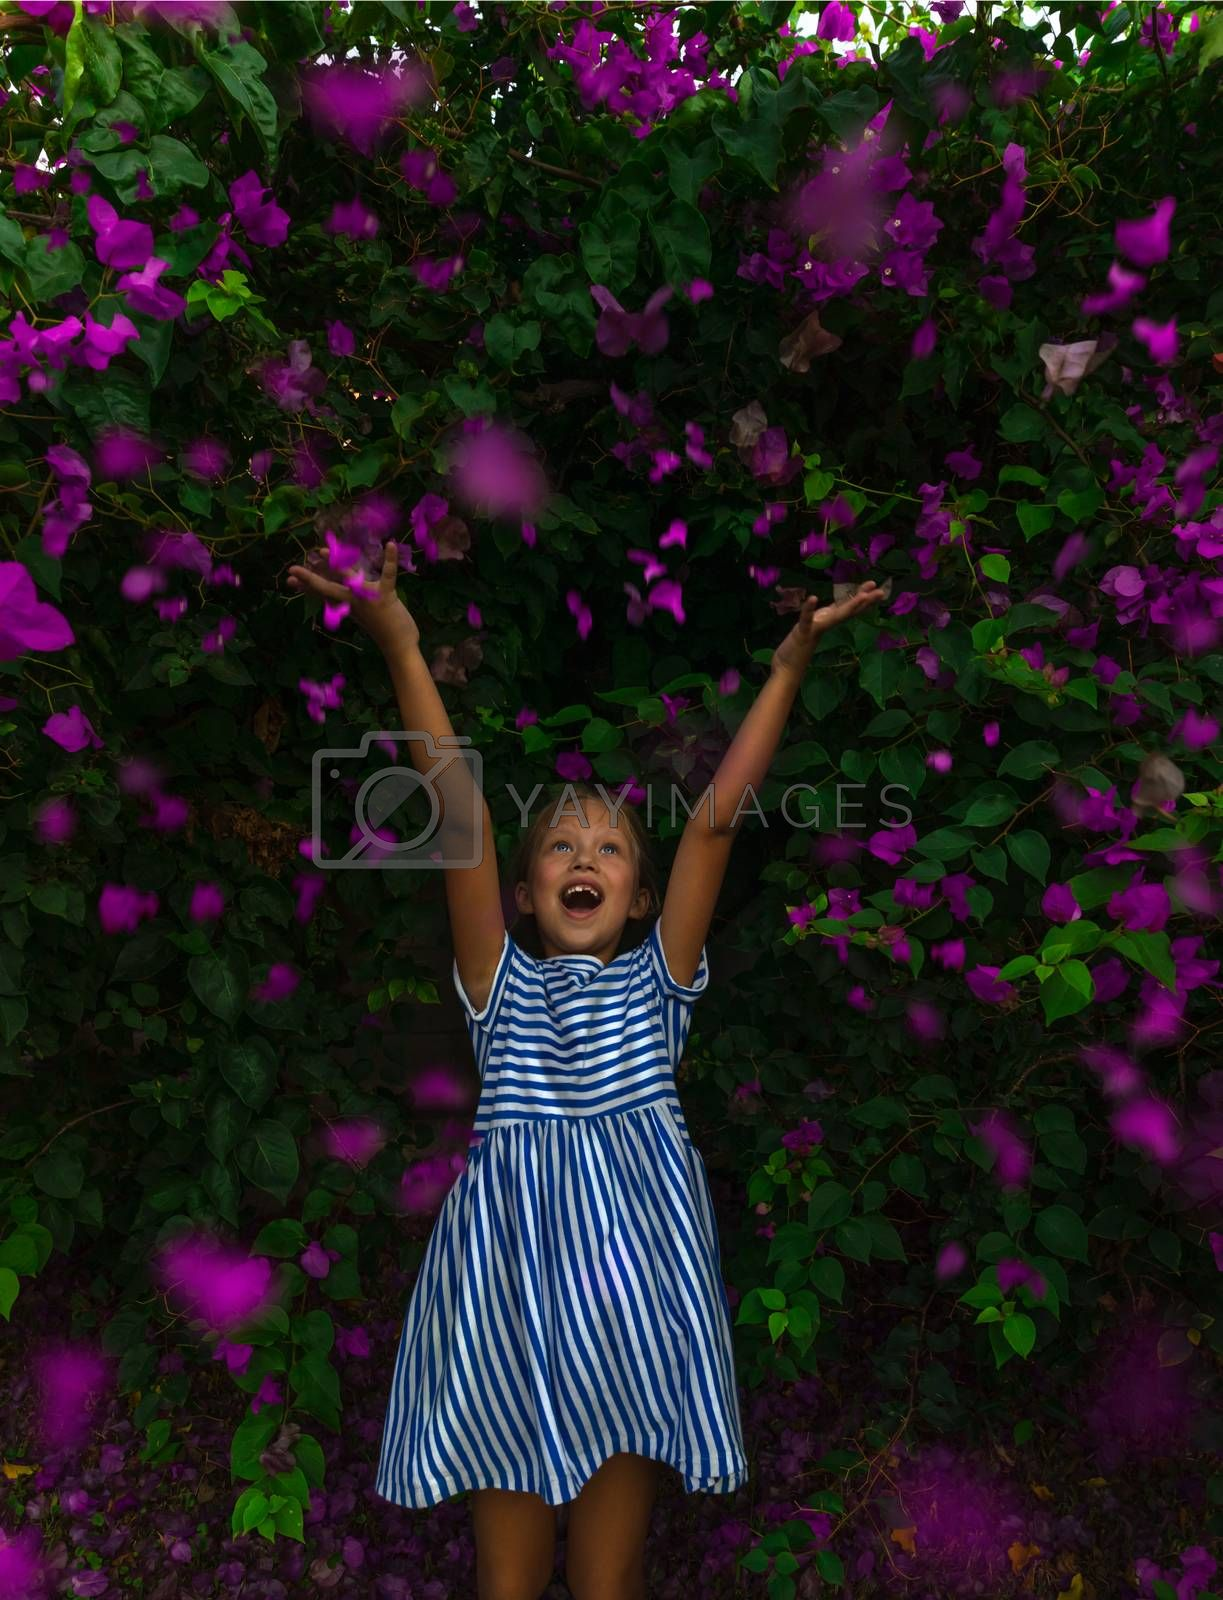 Cute Cheerful Little Girl with Raised Up Hands Enjoying Great Fresh Floral Bush. Floral Garden with Many Purple Flowers. Happy Healthy Childhood.